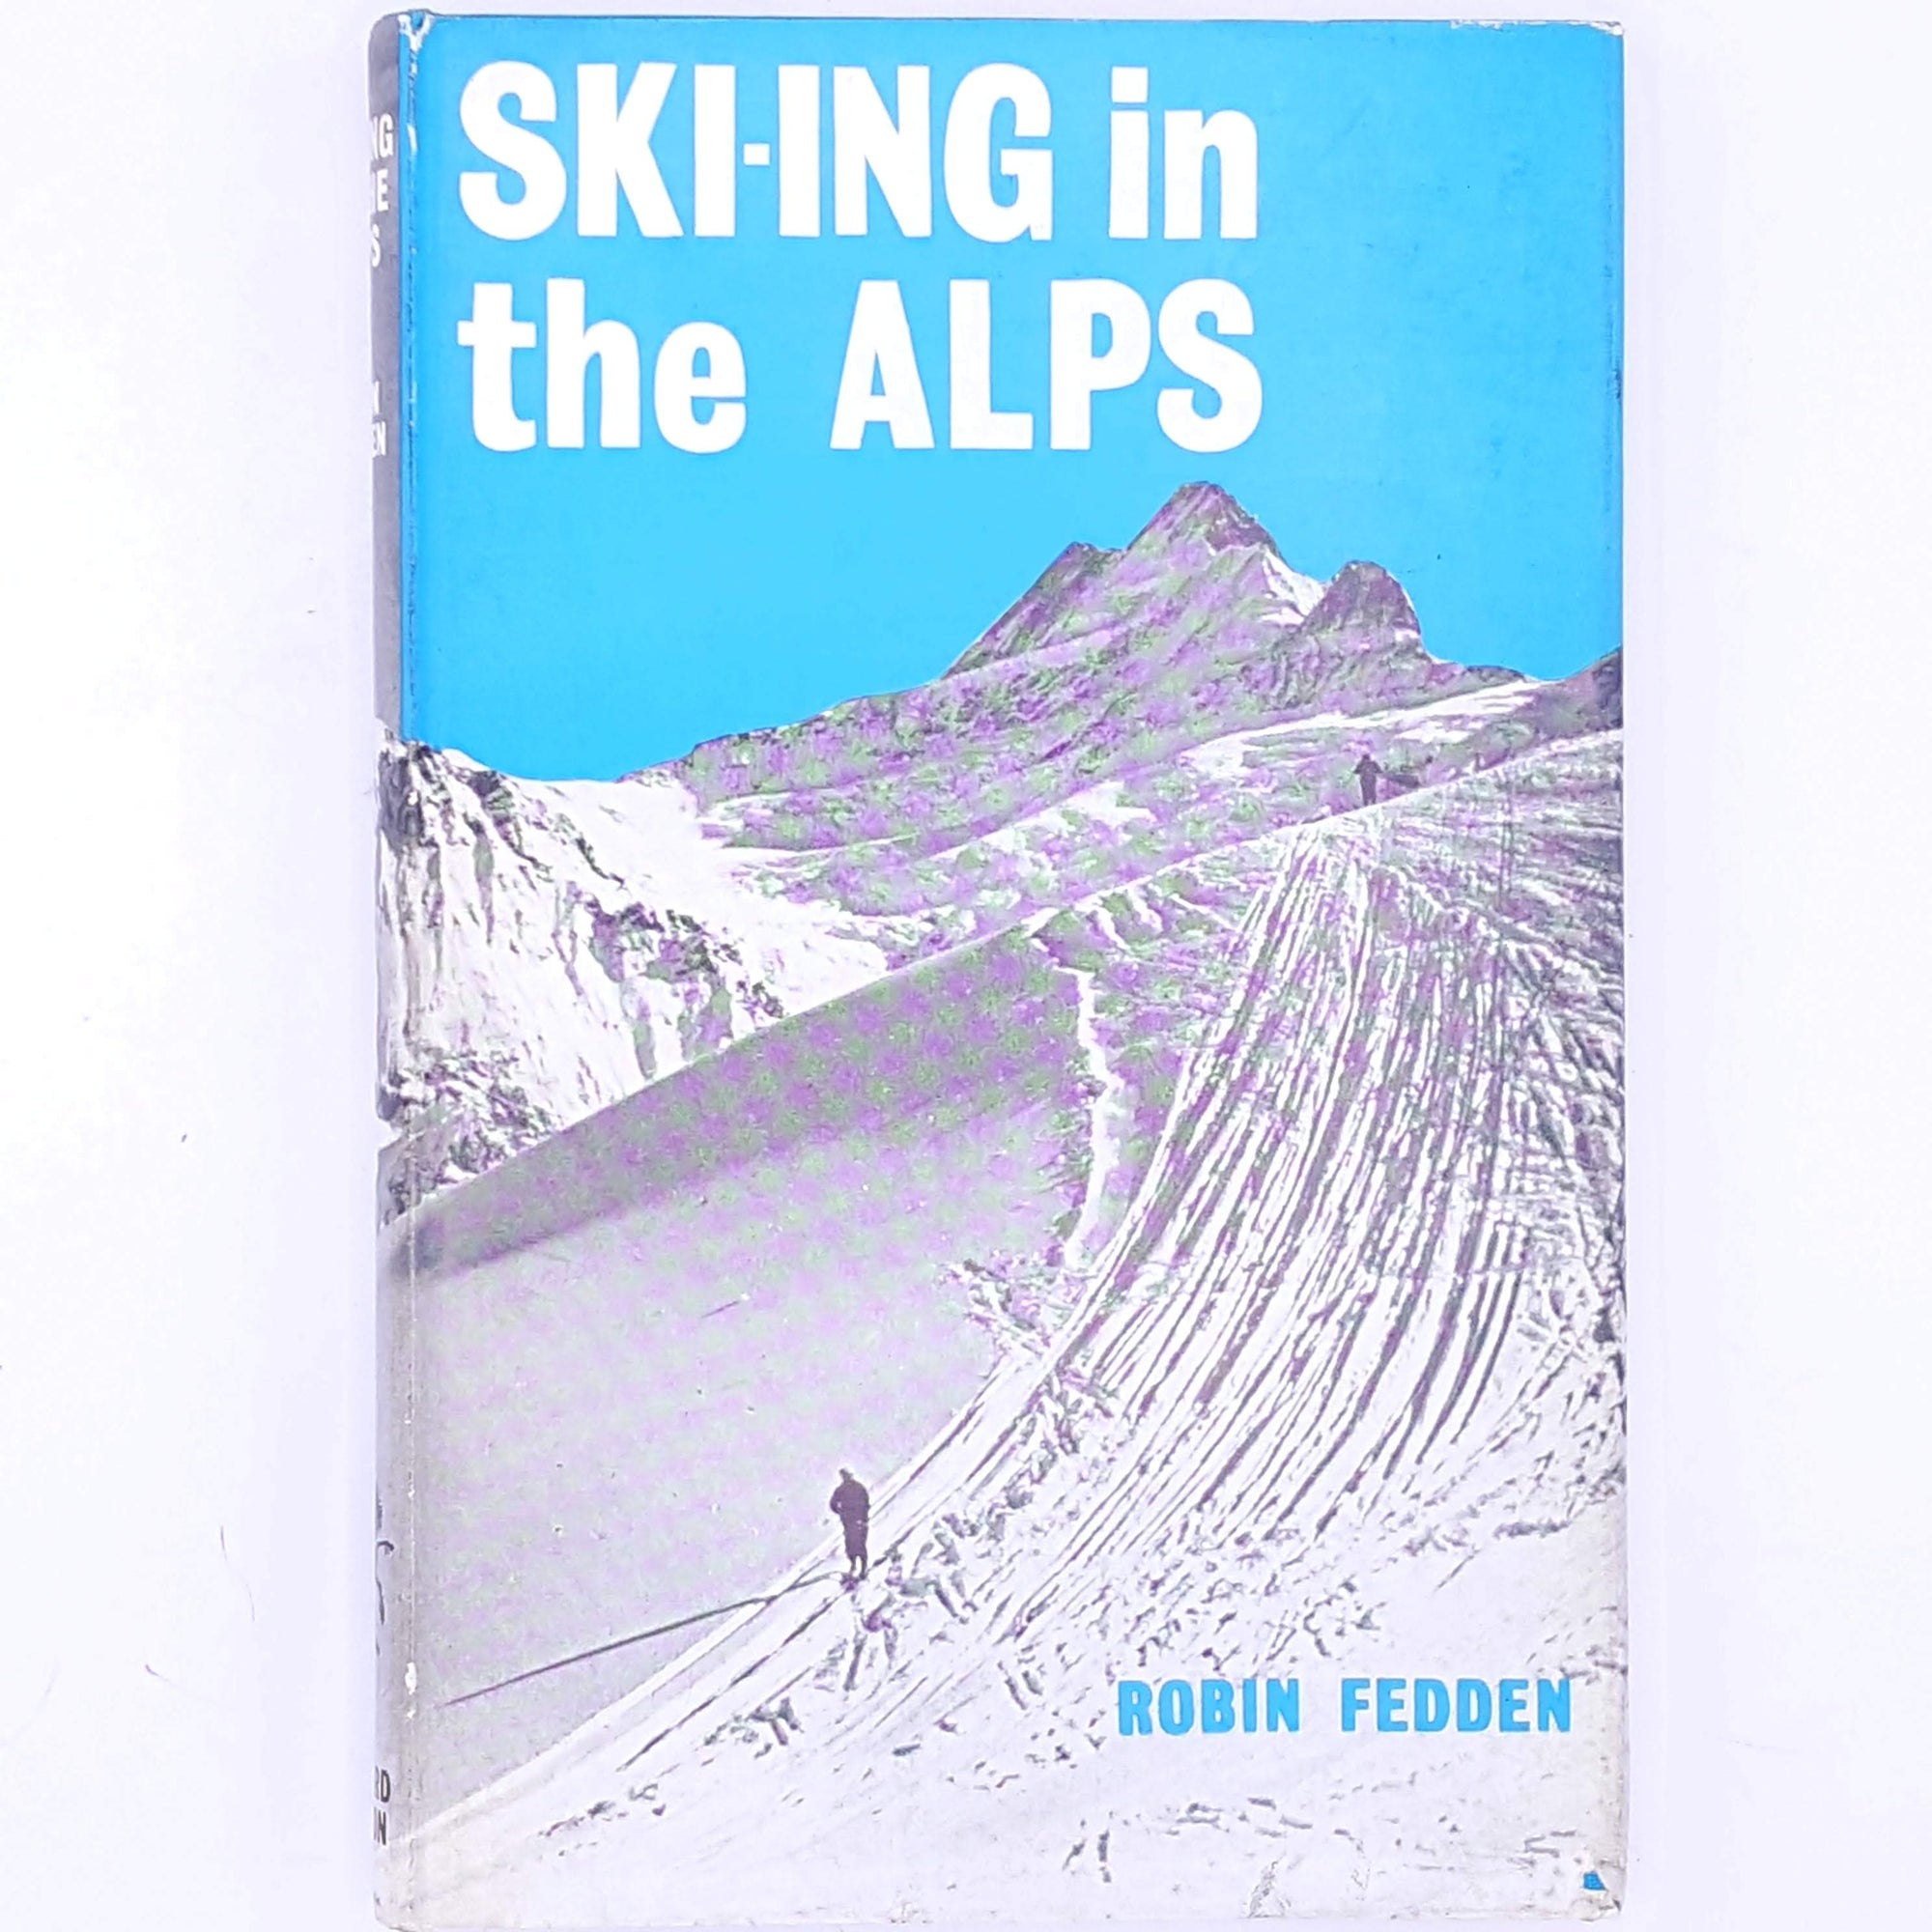 skiing-country-house-library-for-sports-fans-snowboarding-old-thrift-patterned-classic-antique-decorative-ski-for-him-SKI-ING-in-the Alps-winter-books-sport-christmas-gifts-vintage-mountains-snow-alps-